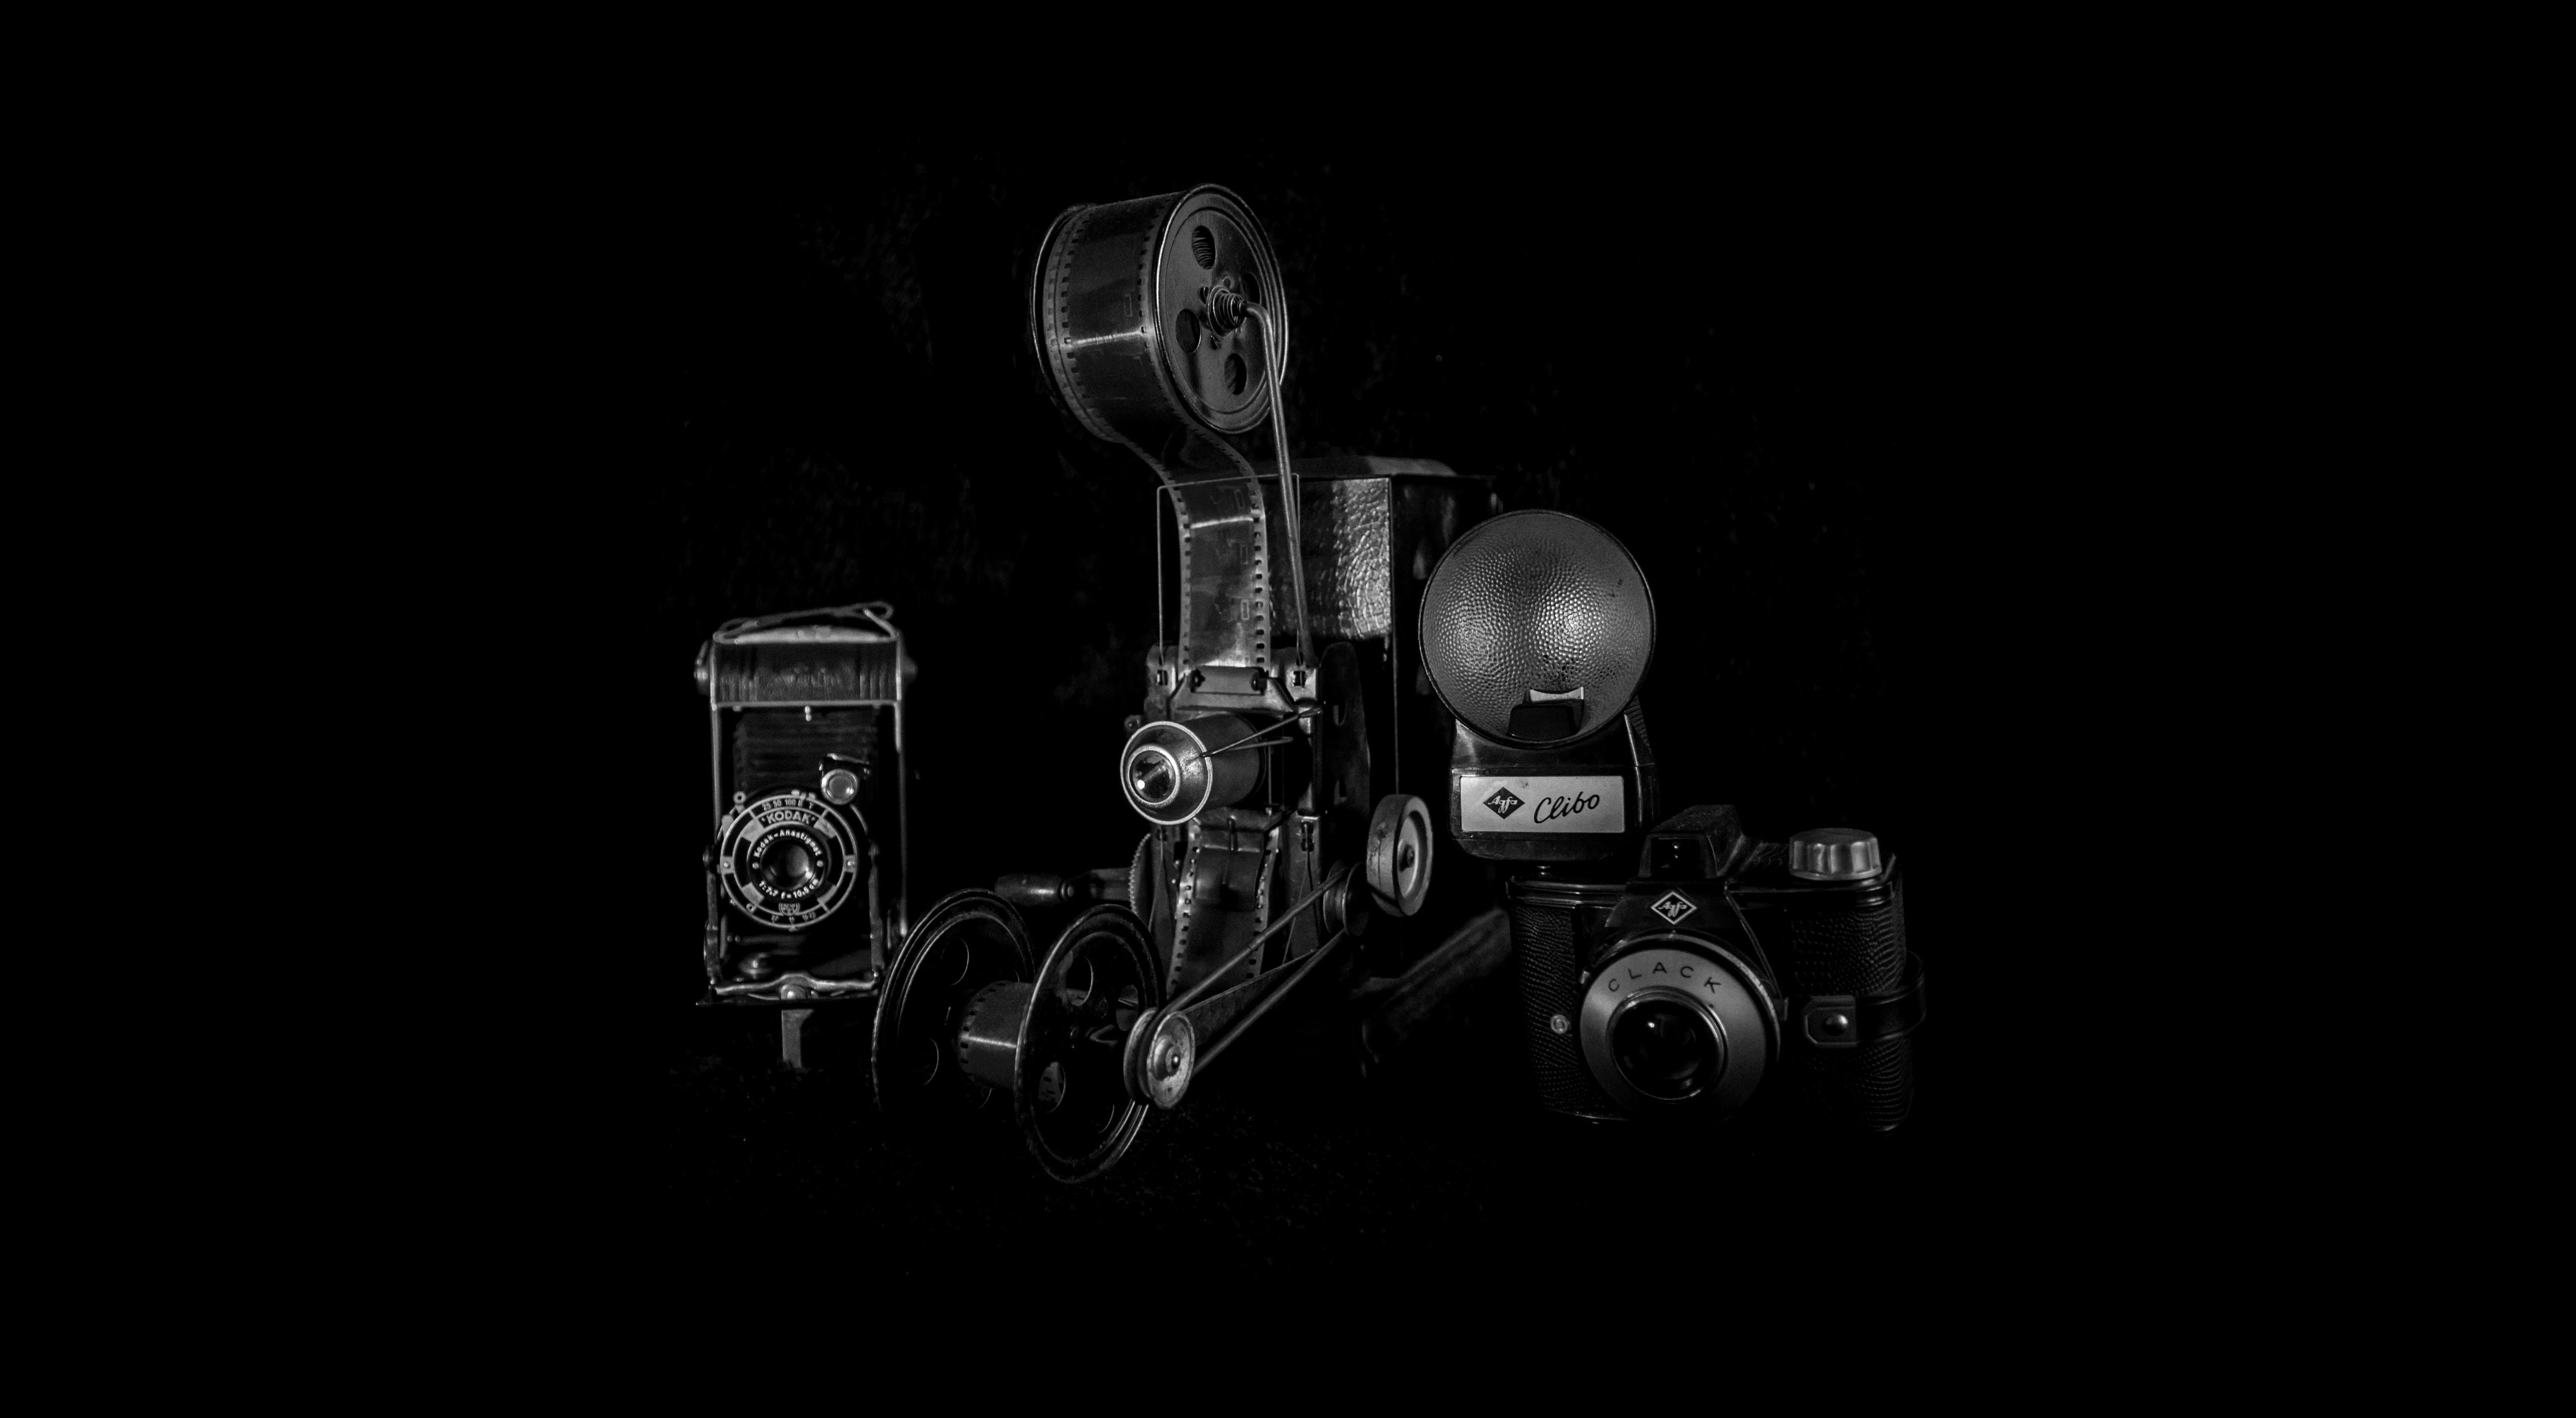 This photo is made by Lisette Marquenie. On the picture you see a Kodak Junior 620, a magic lantarn and a Clack. Old cameras from the old days. #vintage